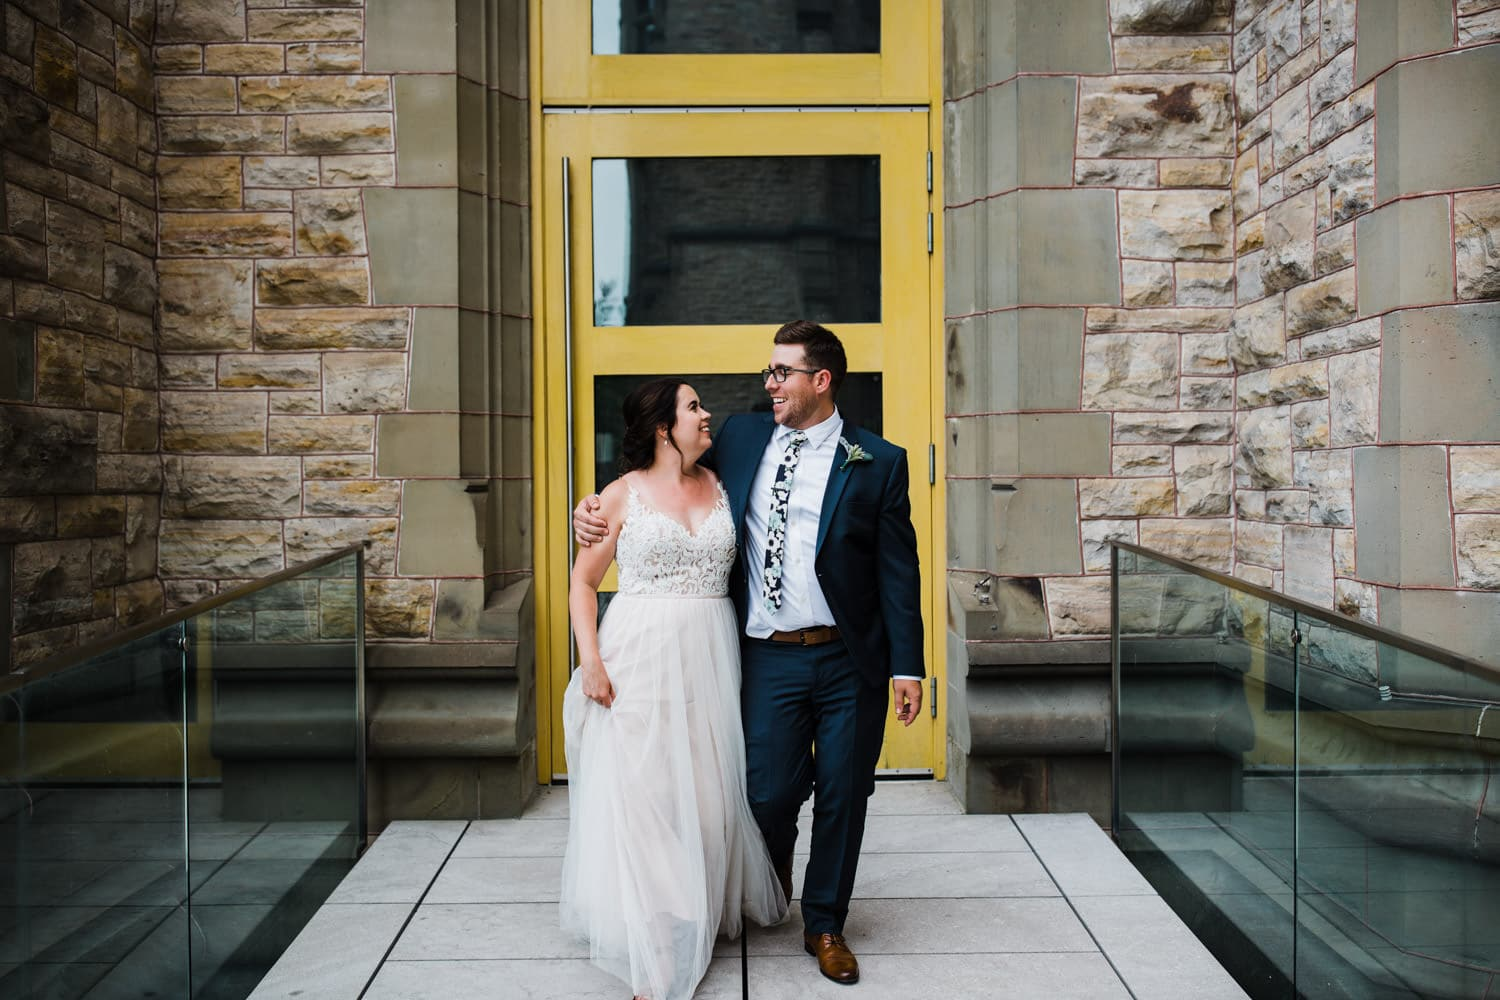 bride and groom walk together - carley teresa photography